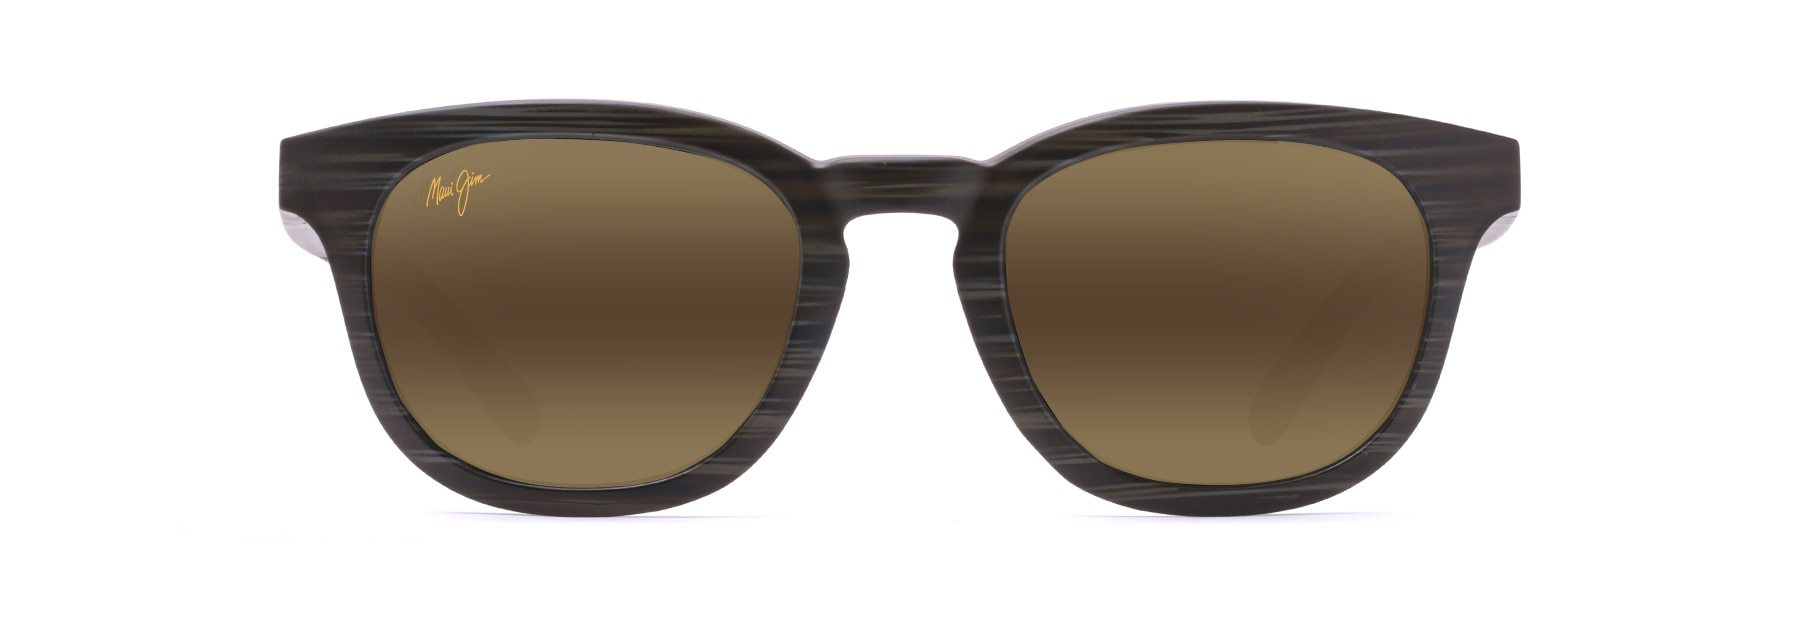 MyMaui Koko Head MM737-012 Sunglasses